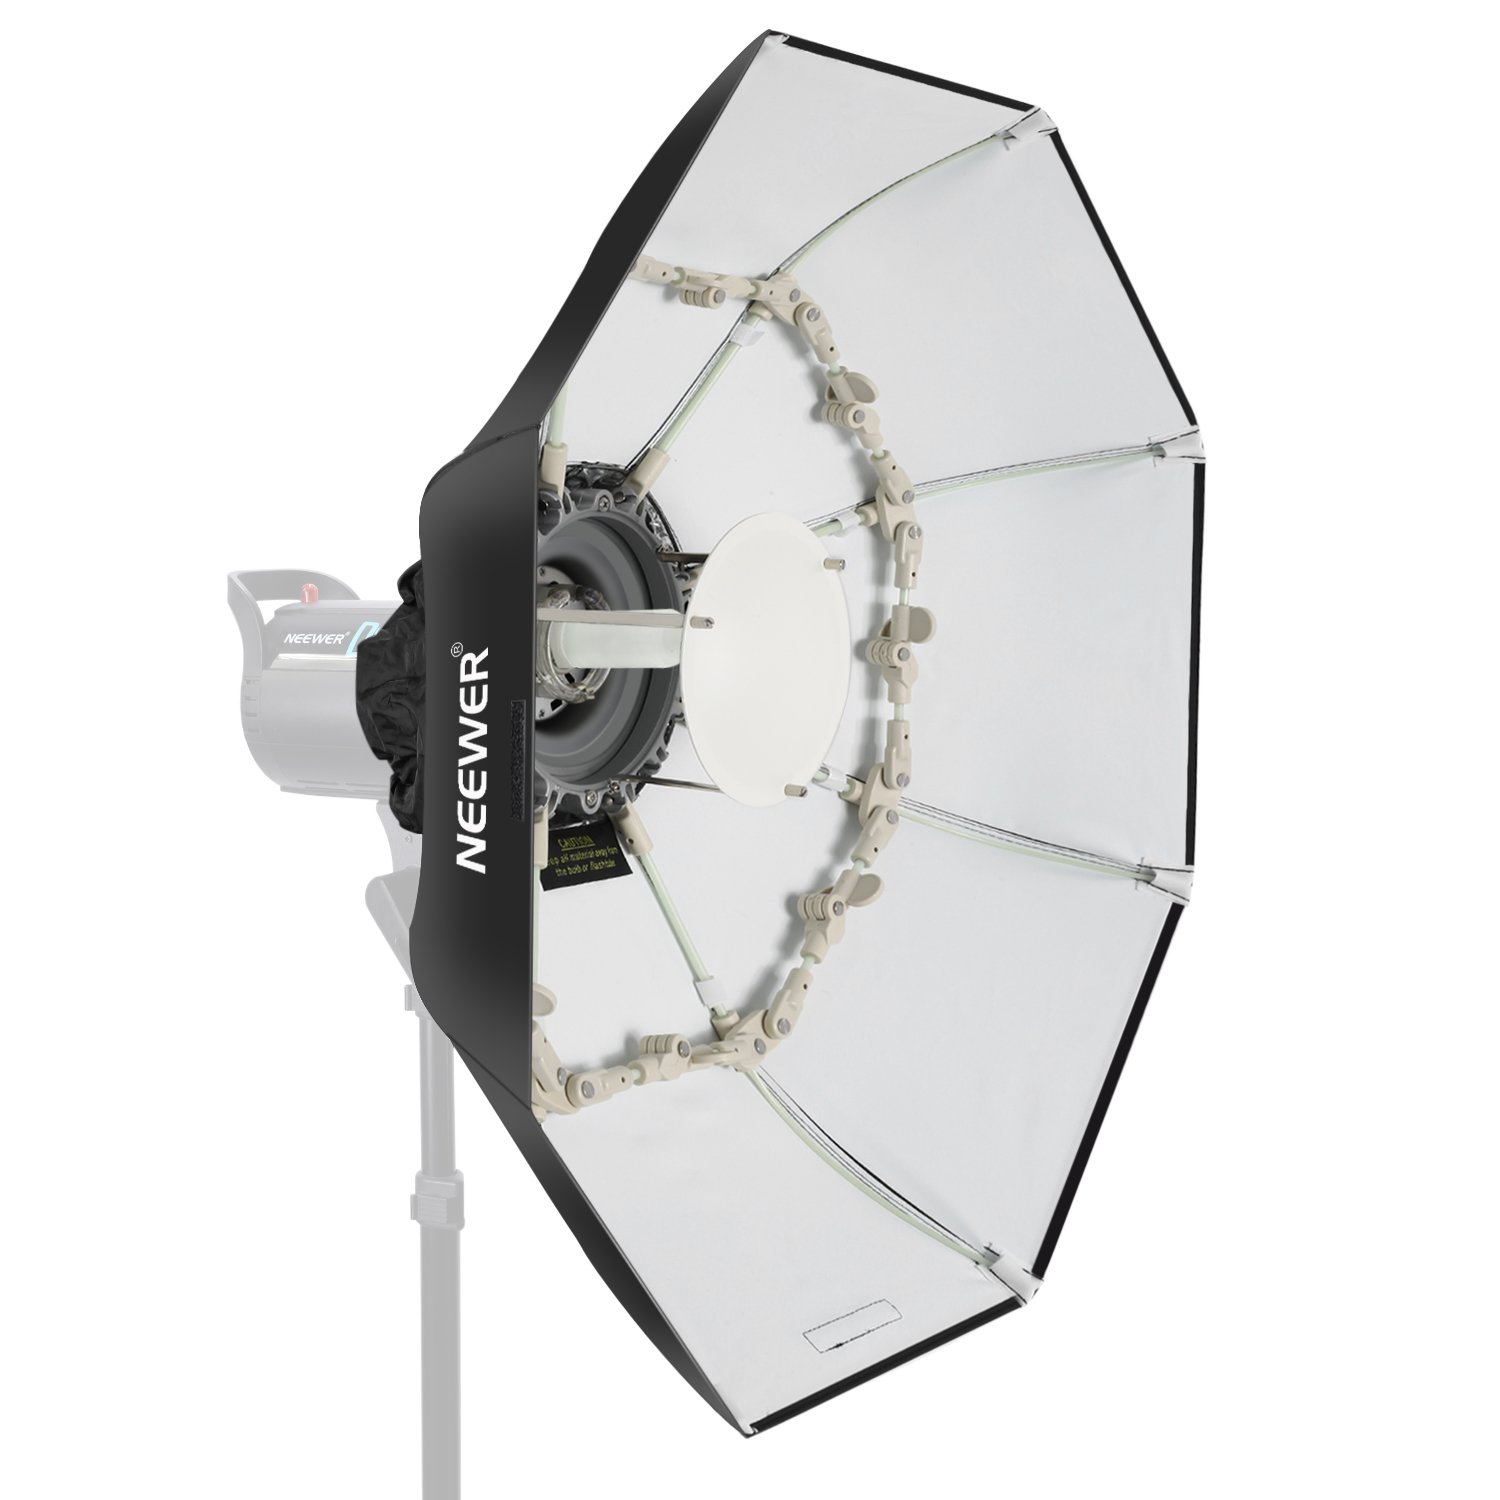 Neewer Folding Beauty Dish Octagonal Softbox 40 inches/100 centimeters, with Center Deflector Disc,Removable Diffuser and Bowens Speed Ring for Monolight Studio Flash in Portrait and Event Photography by Neewer